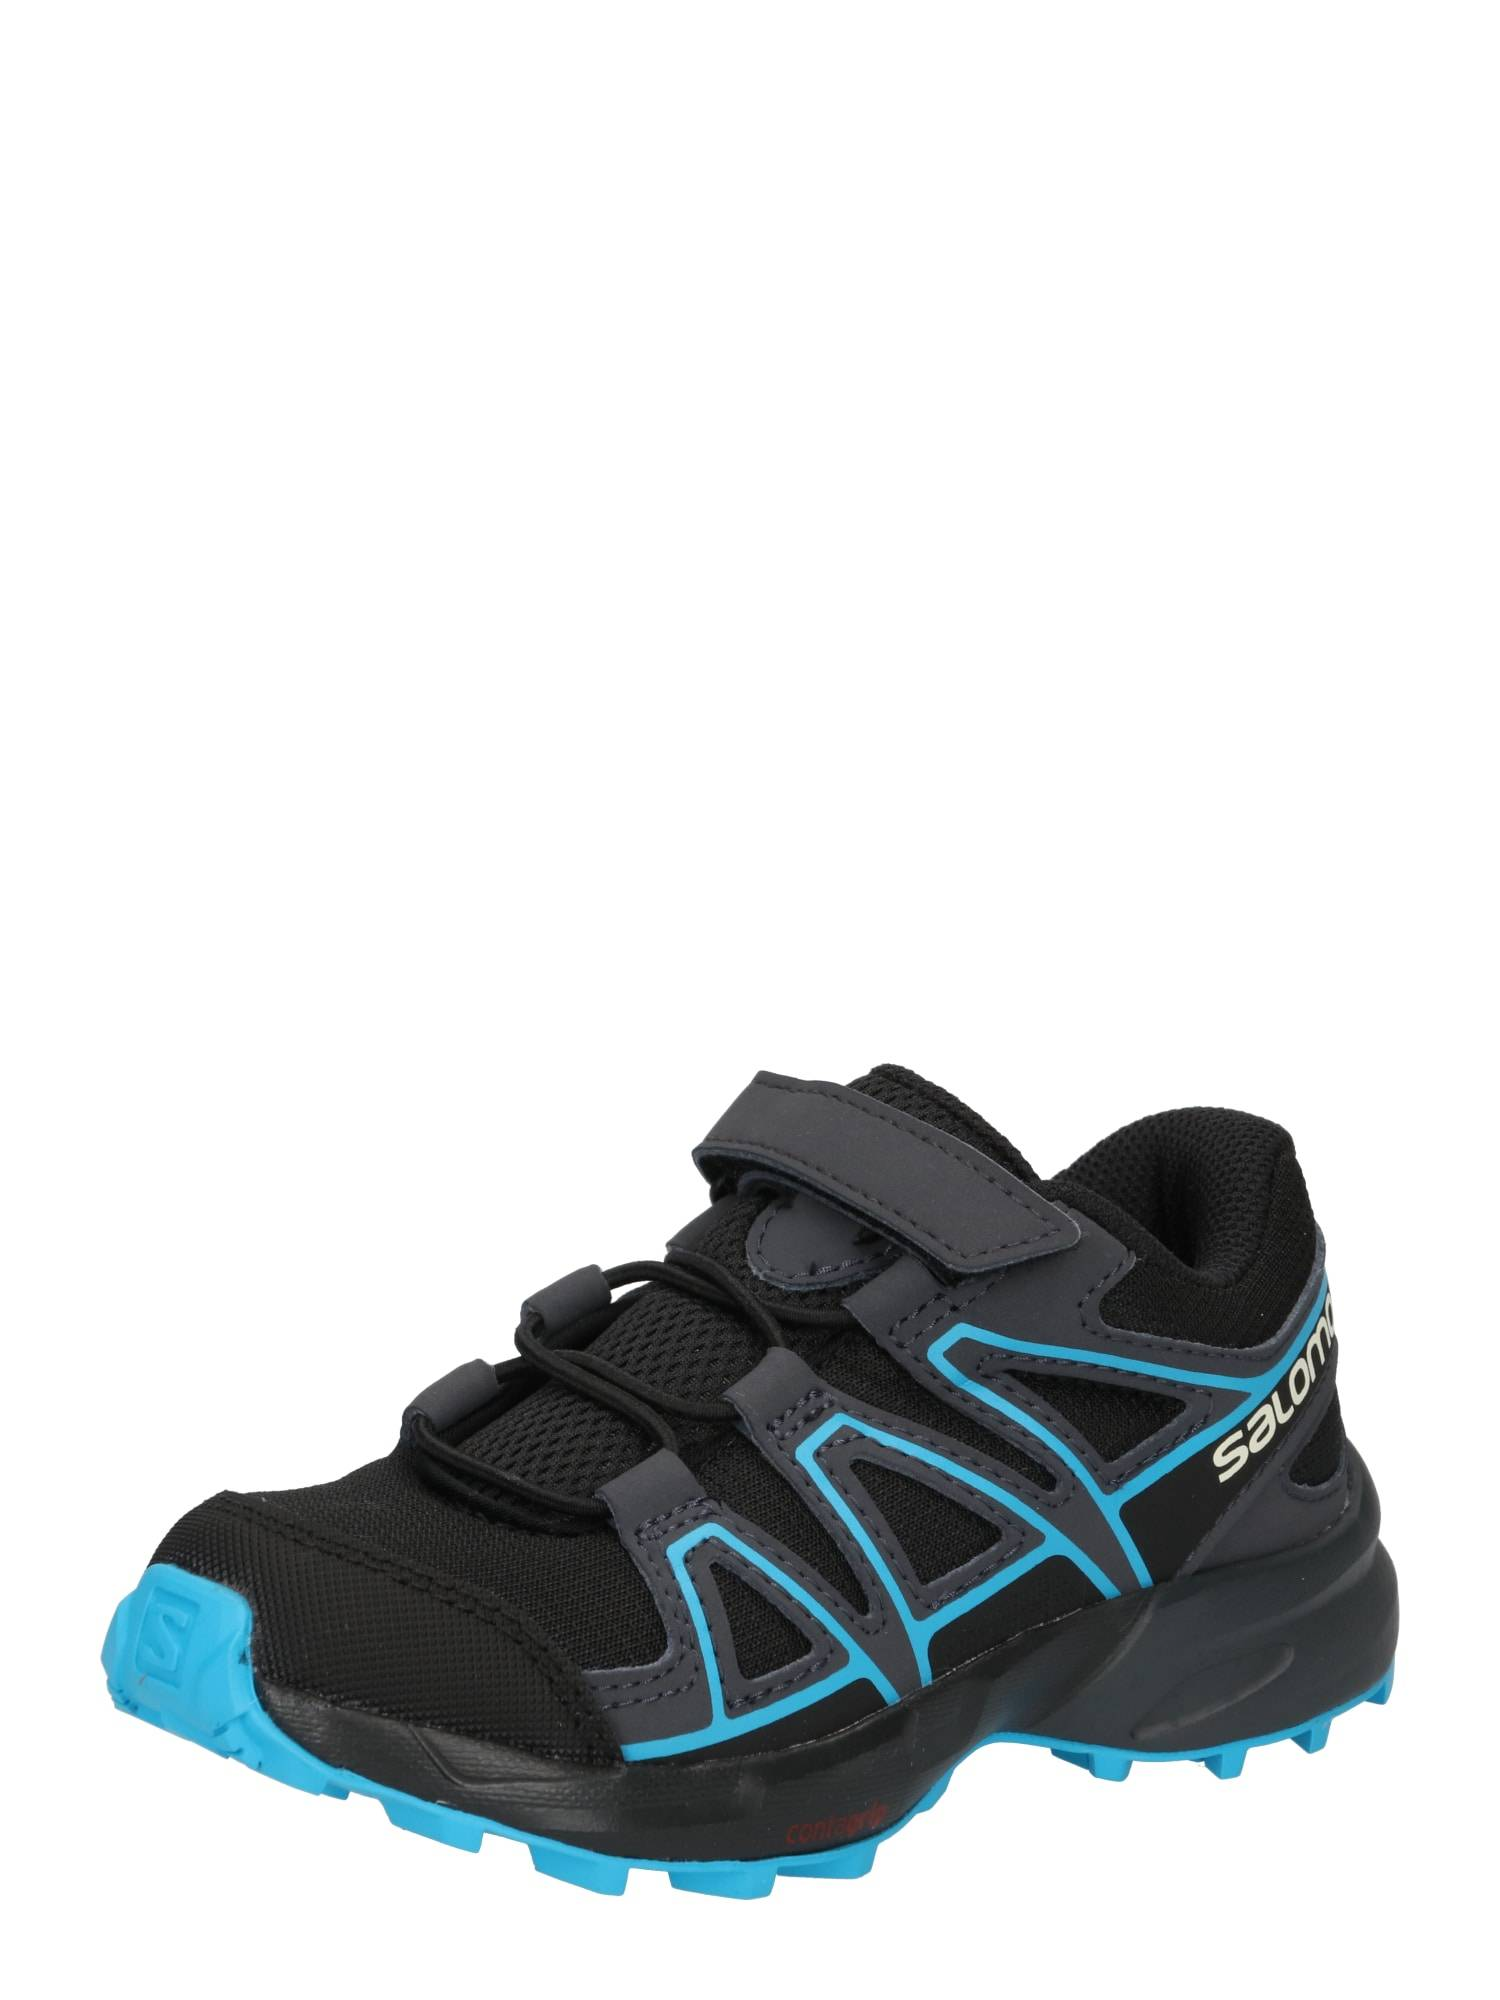 SALOMON Scarpa bassa 'SPEEDCROSS BUNGEE' Nero